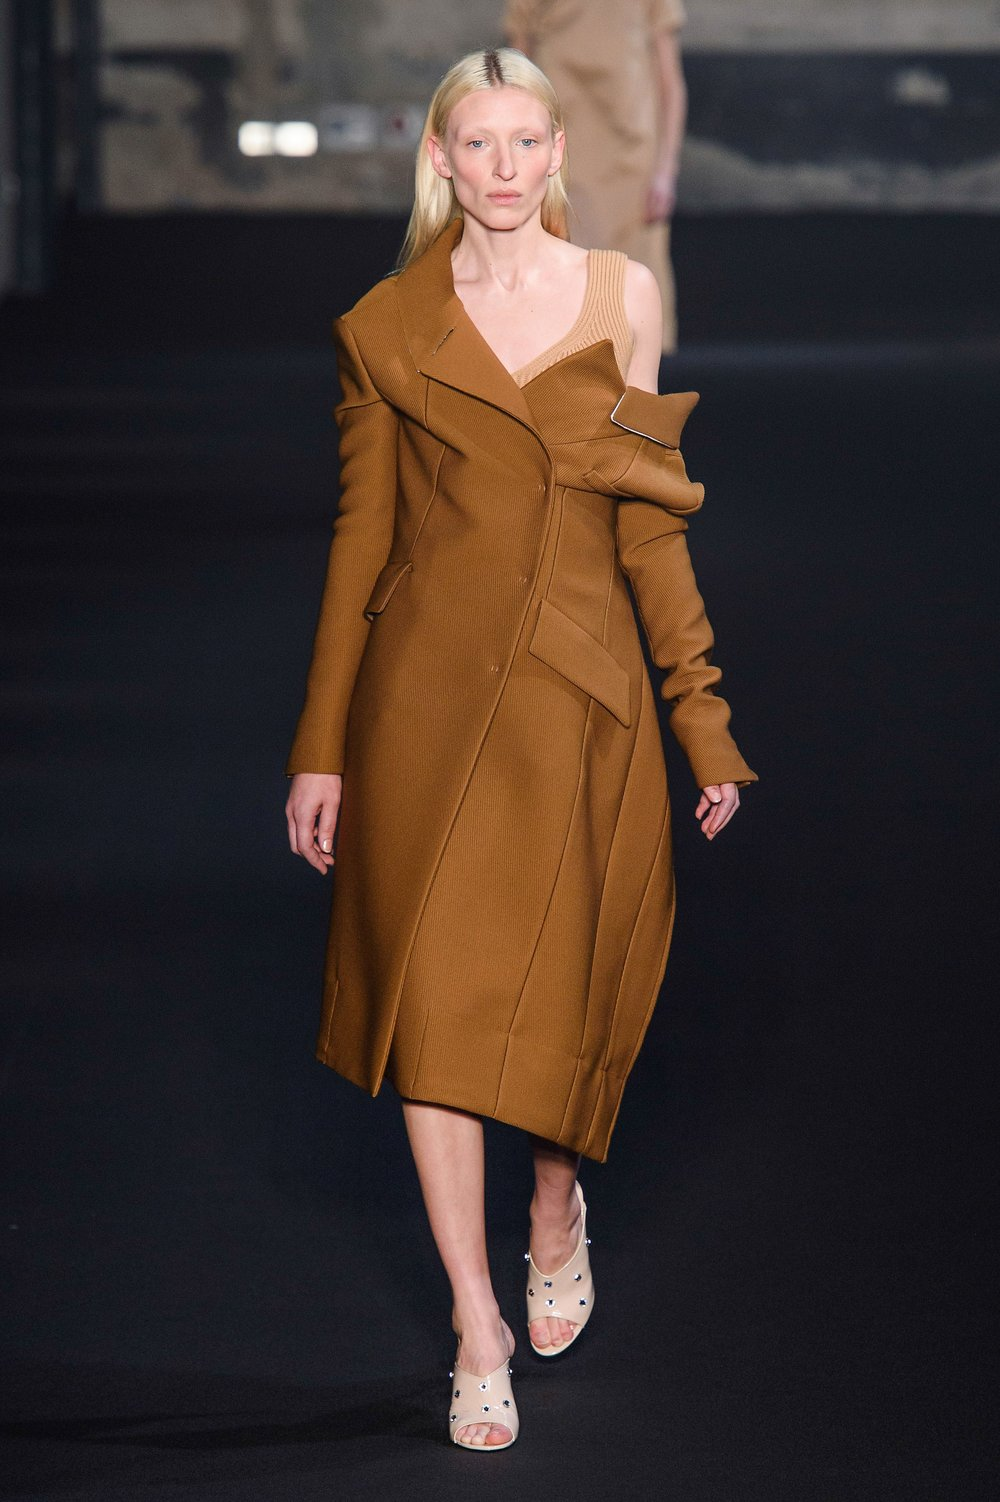 Deconstructed - Coats and pinafore style dresses - No.21